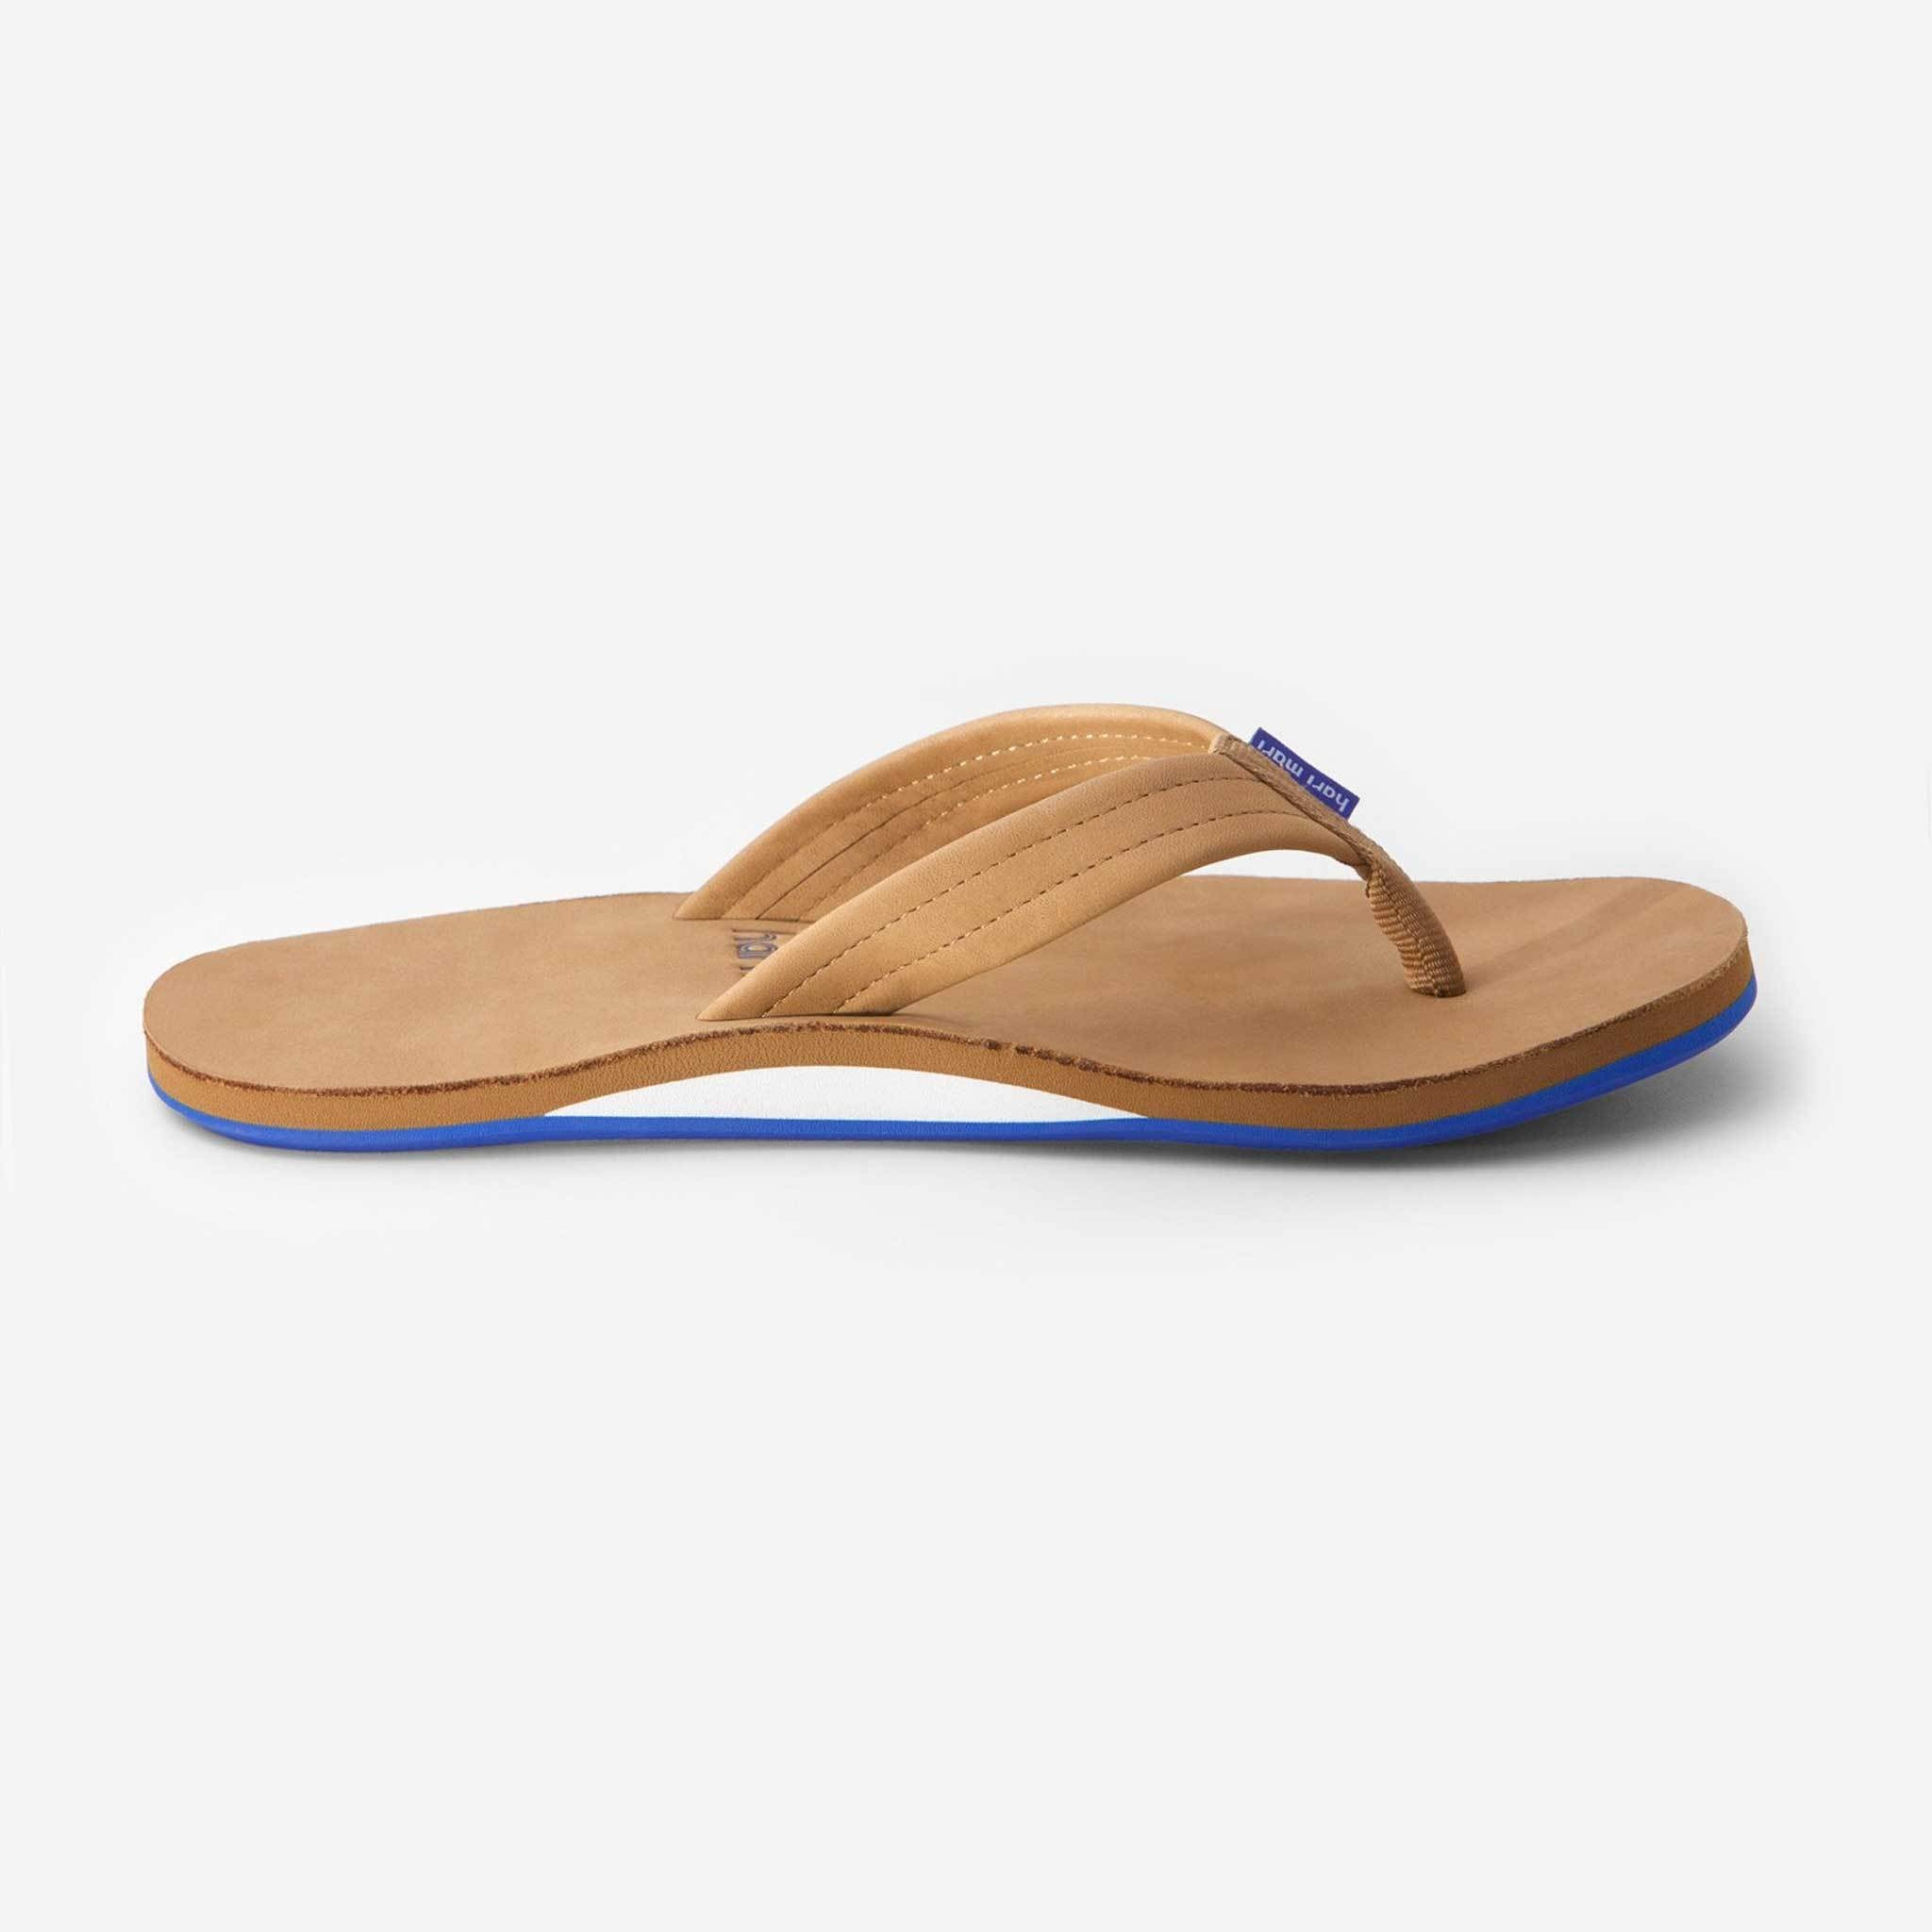 e95c9caf4193 Products - Flip Flops